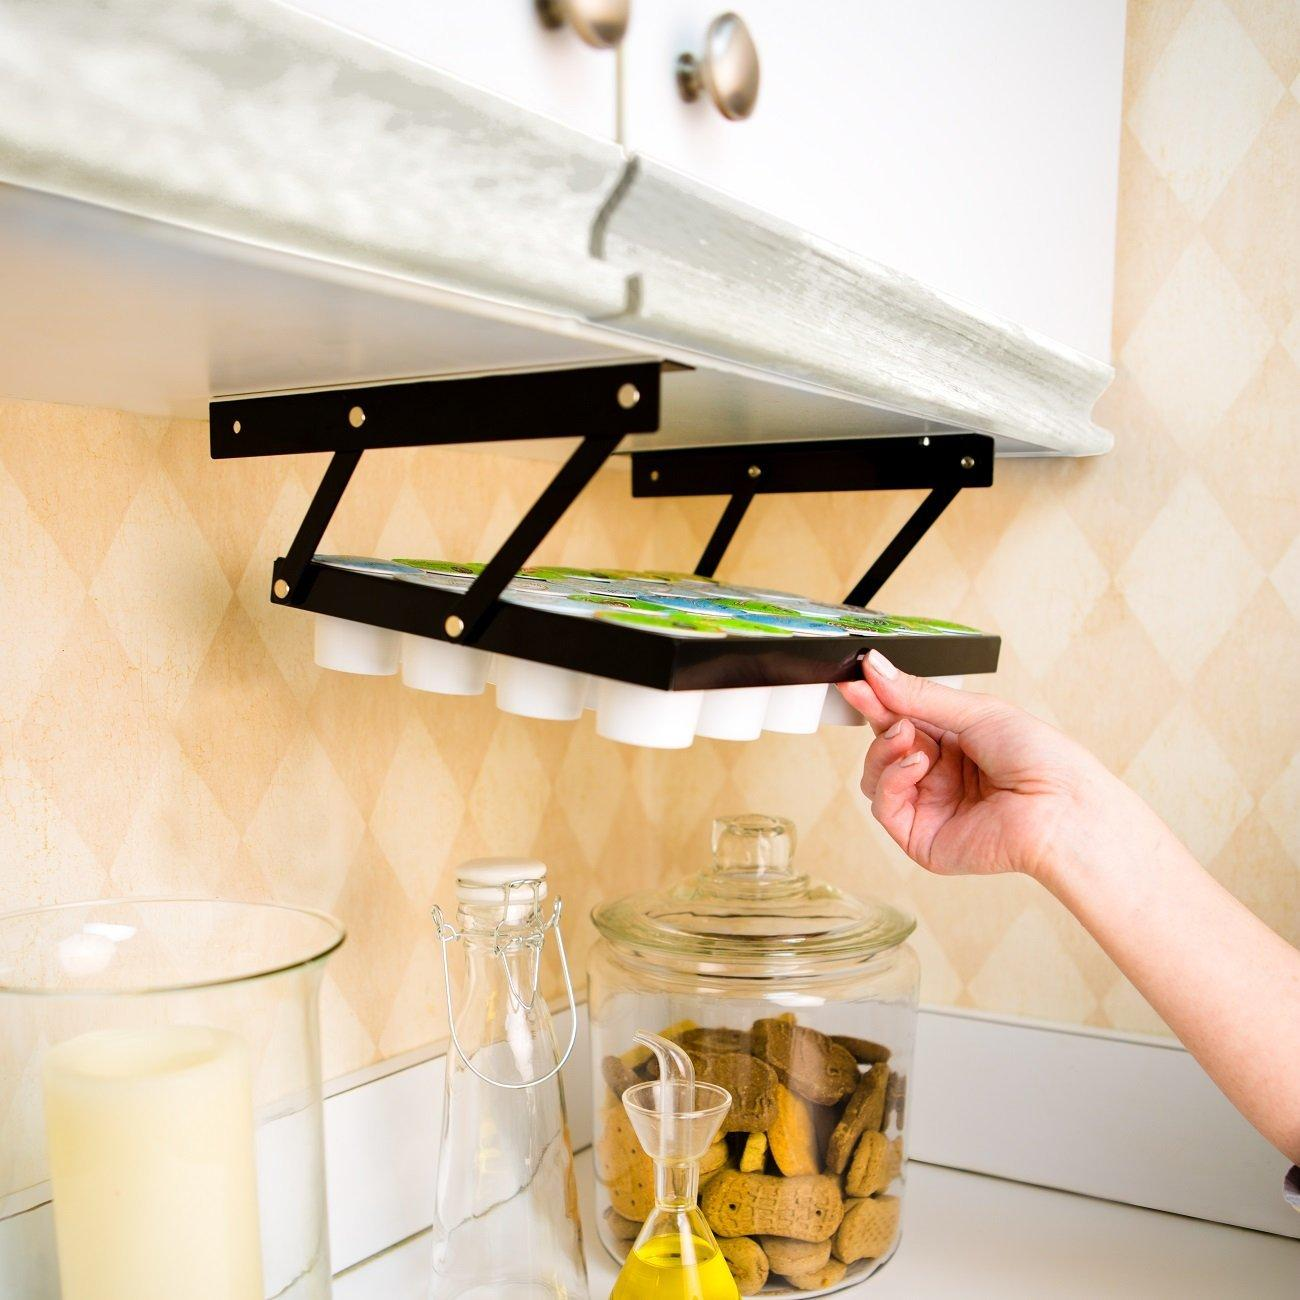 These 26 Amazing Storage Inventions Will Make Your Life Really Simple